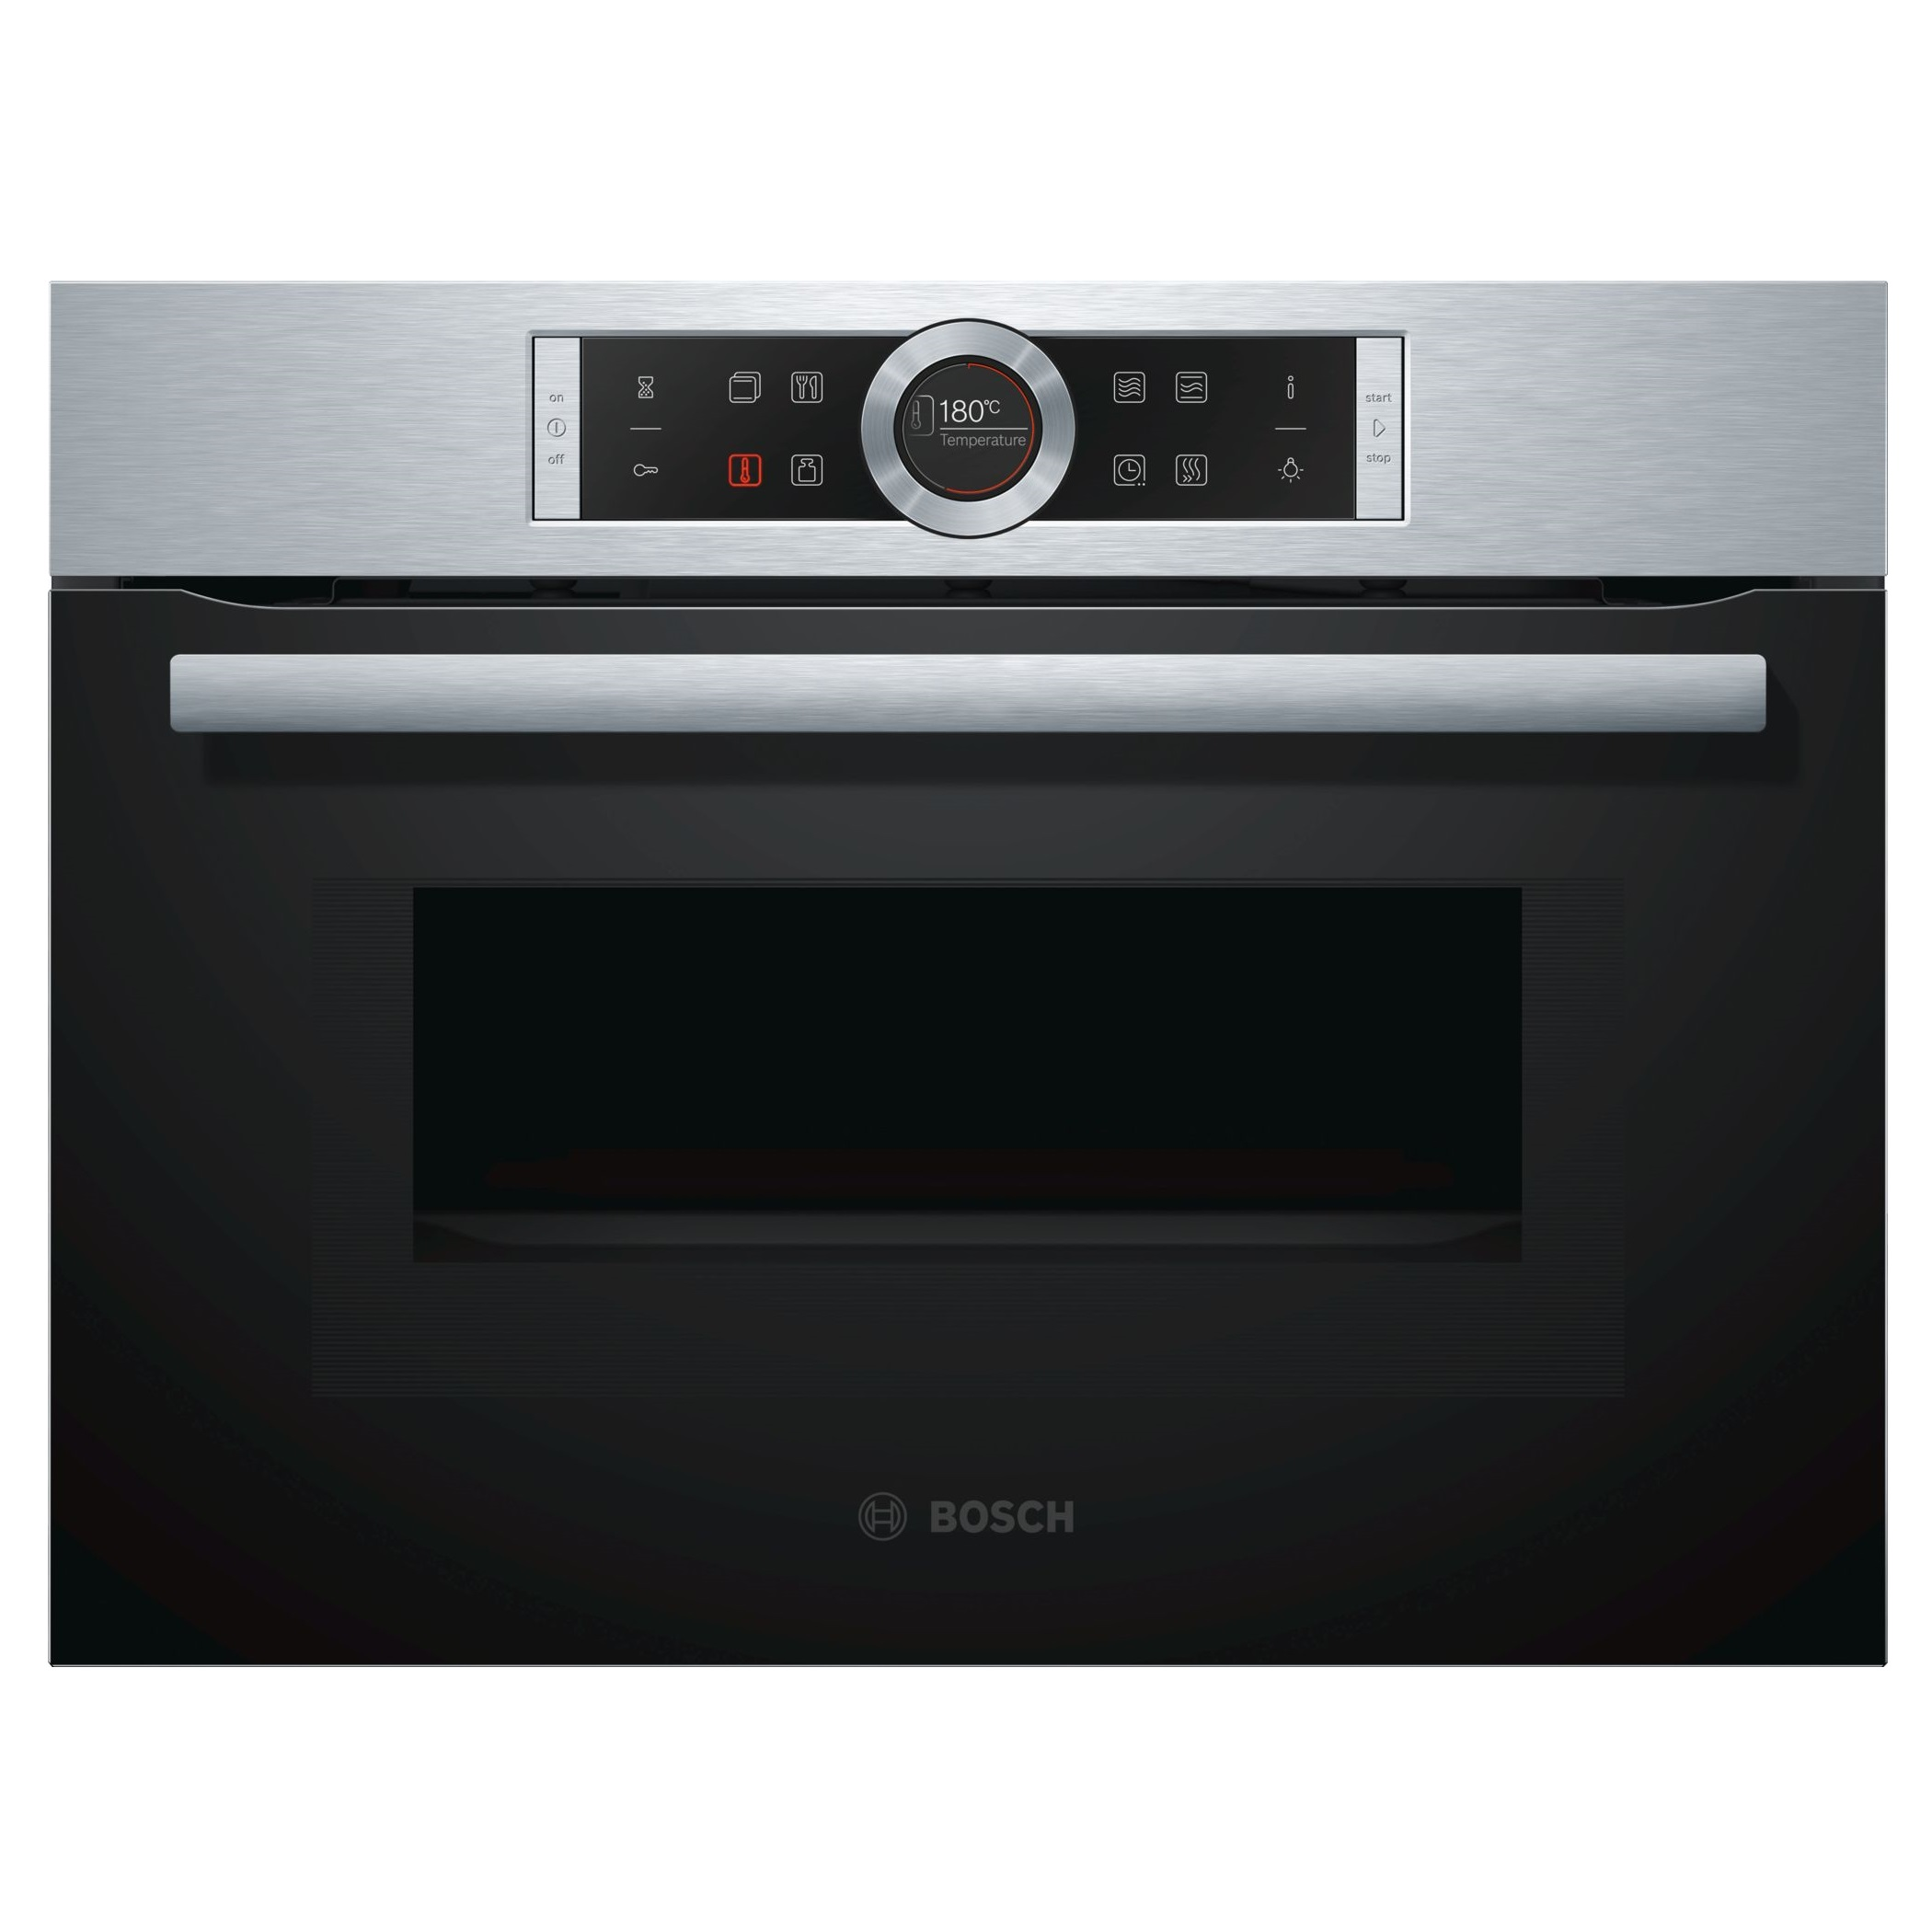 bosch 60cm series 8 compact microwave oven cmg633bs1. Black Bedroom Furniture Sets. Home Design Ideas